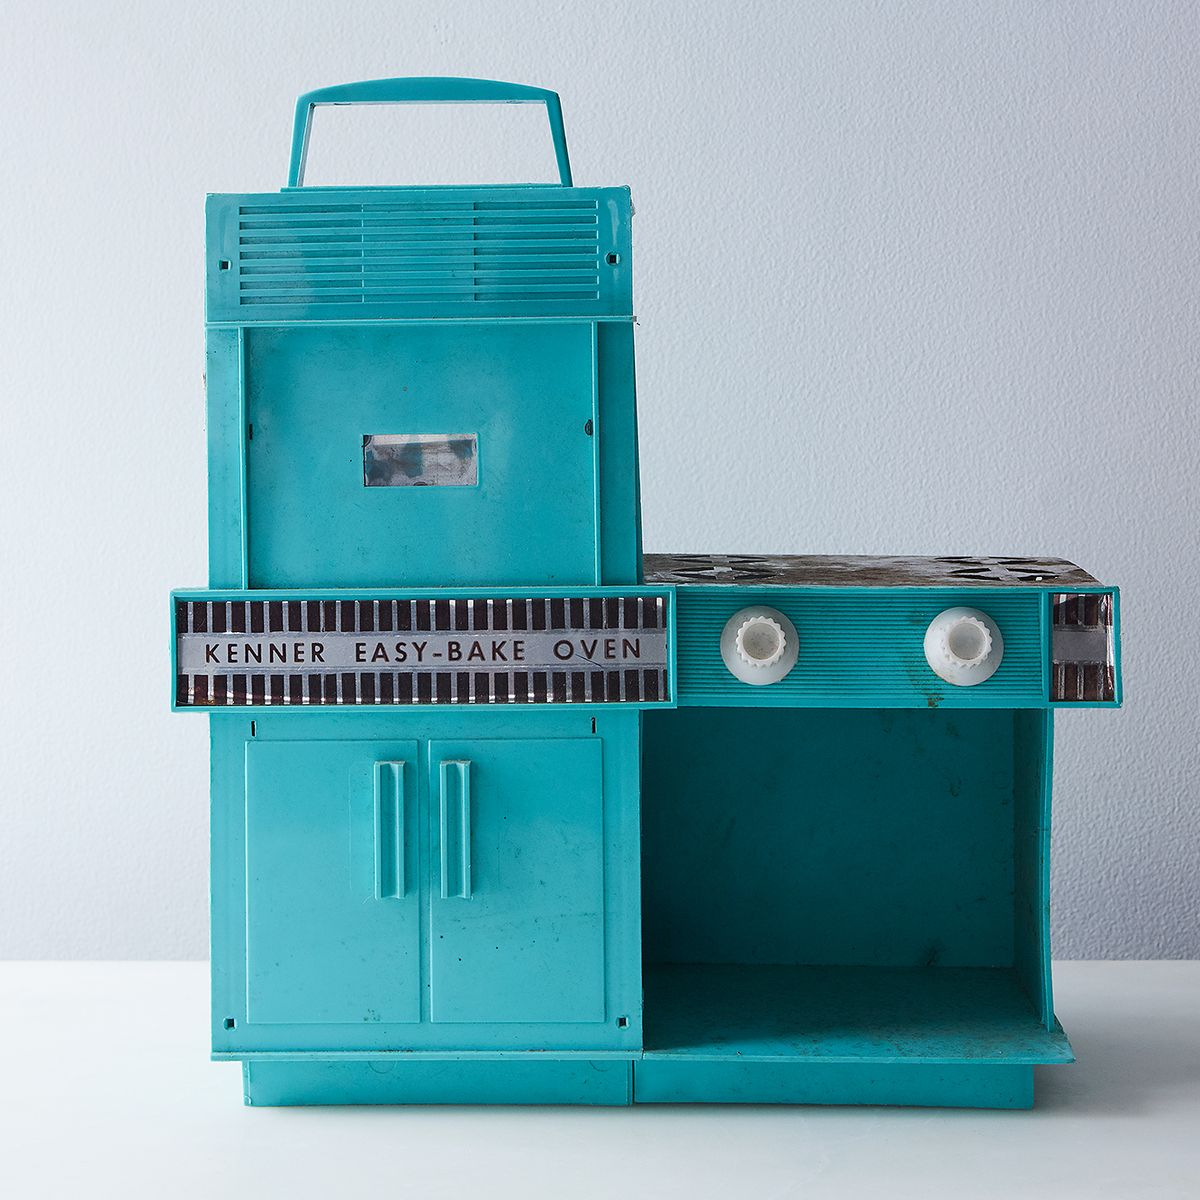 How The Easy Bake Oven Has Endured 53 Years And 11 Designs